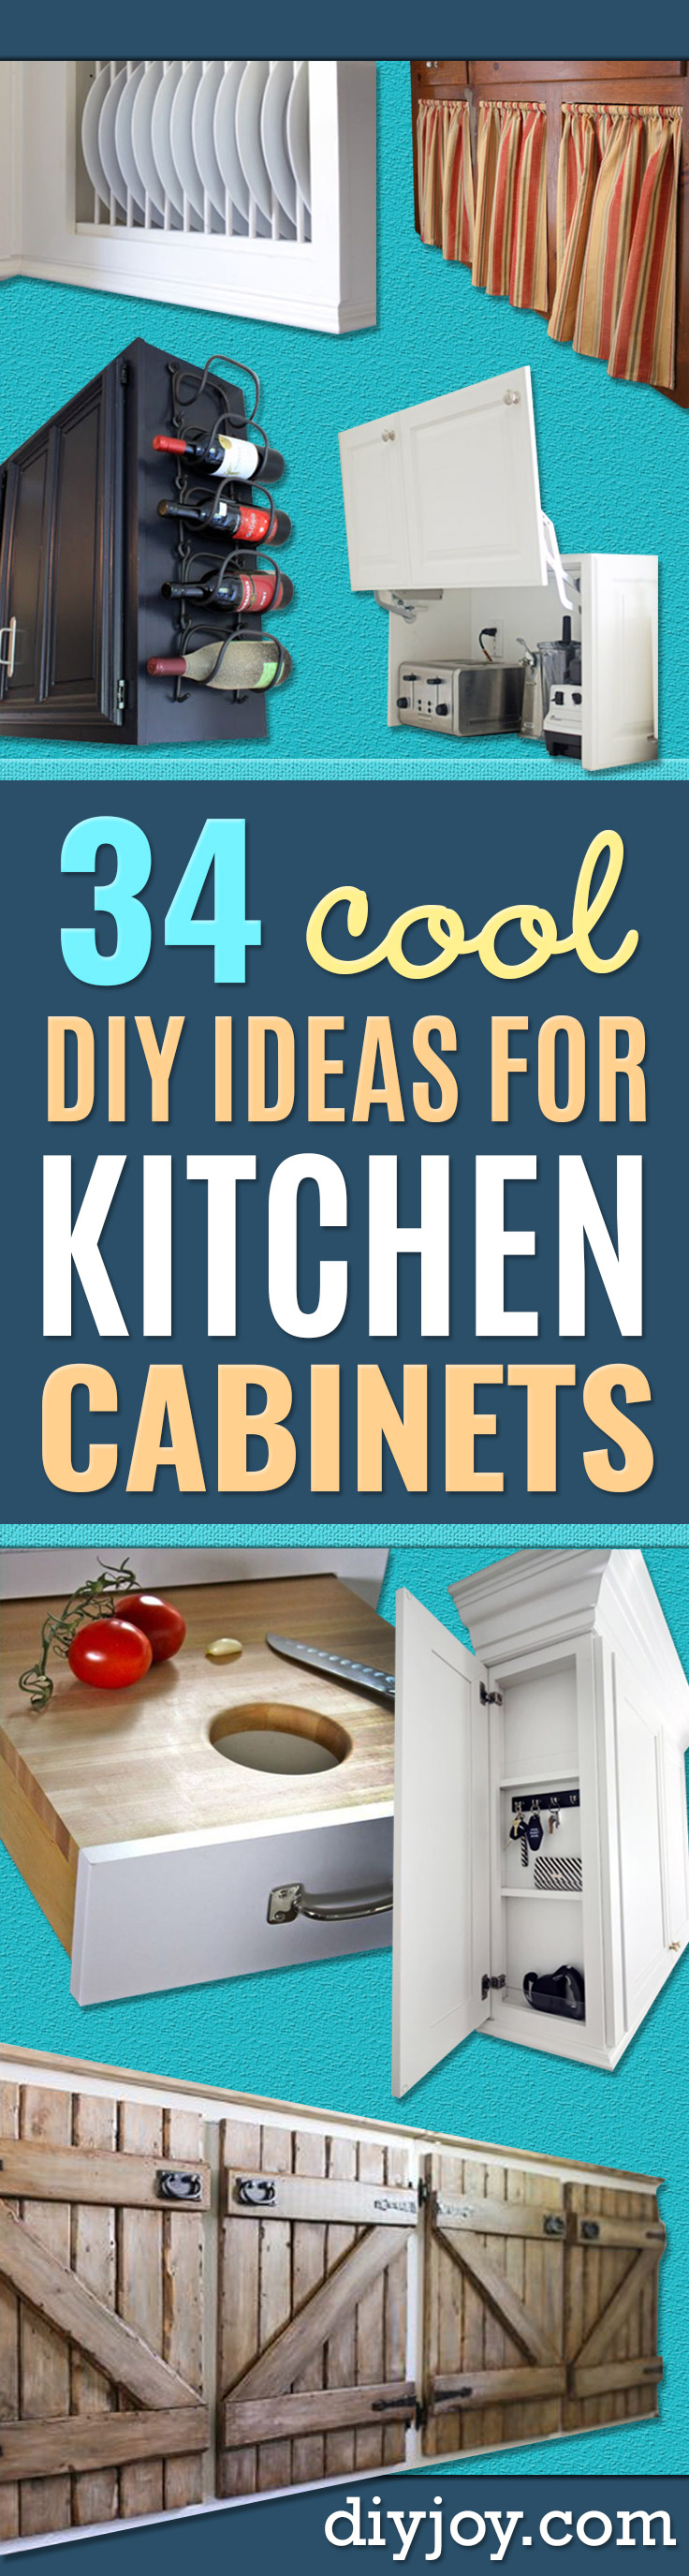 DIY Kitchen Cabinet Ideas - Makeover and Before and After - How To Build, Plan and Renovate Your Kitchen Cabinets - Painted, Cheap Refact, Free Plans, Rustic Decor, Farmhouse and Vintage Looks, Modern Design and Inexpensive Budget Friendly Projects